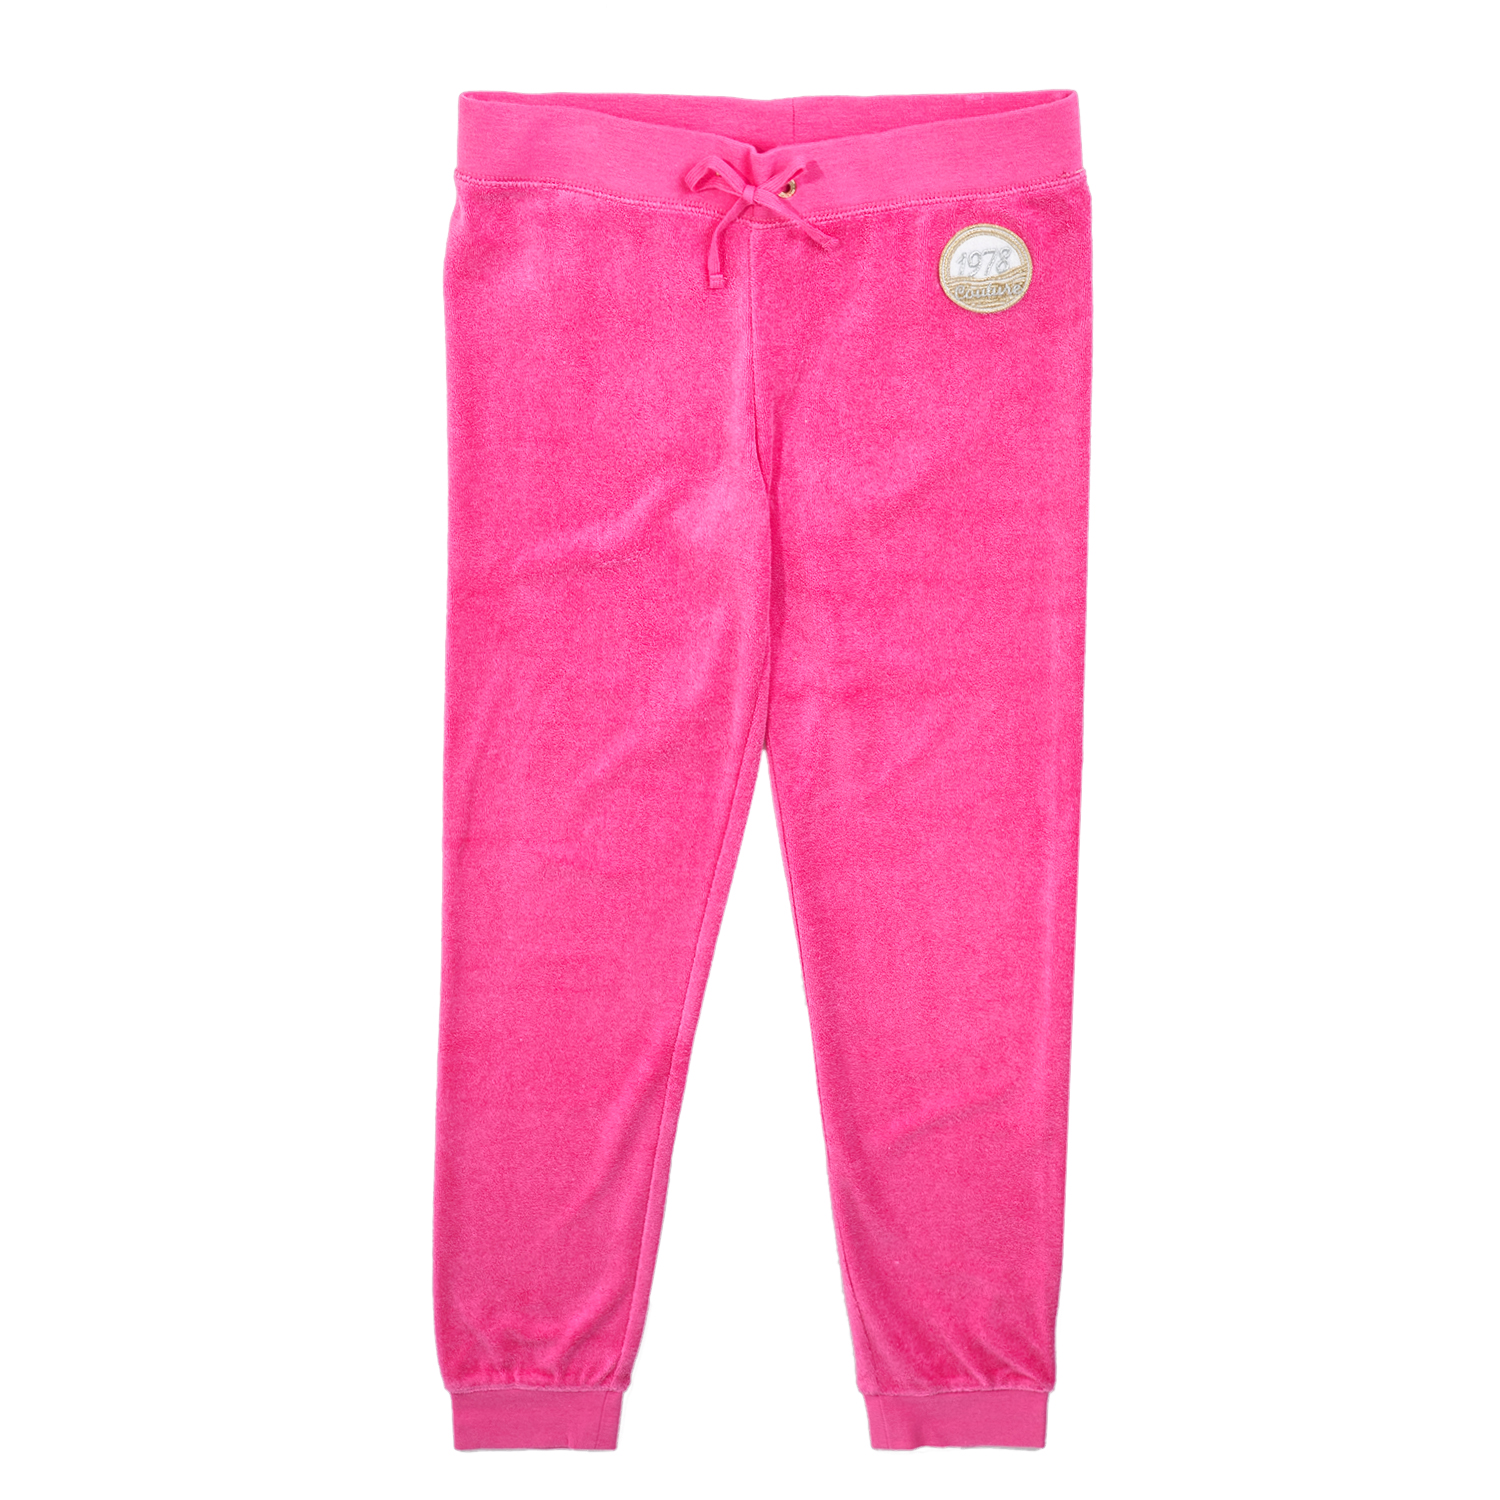 JUICY COUTURE KIDS - Κοριτσίστικο παντελόνι φόρμας JUICY COUTURE MICROTERRY JUIC παιδικά girls ρούχα παντελόνια